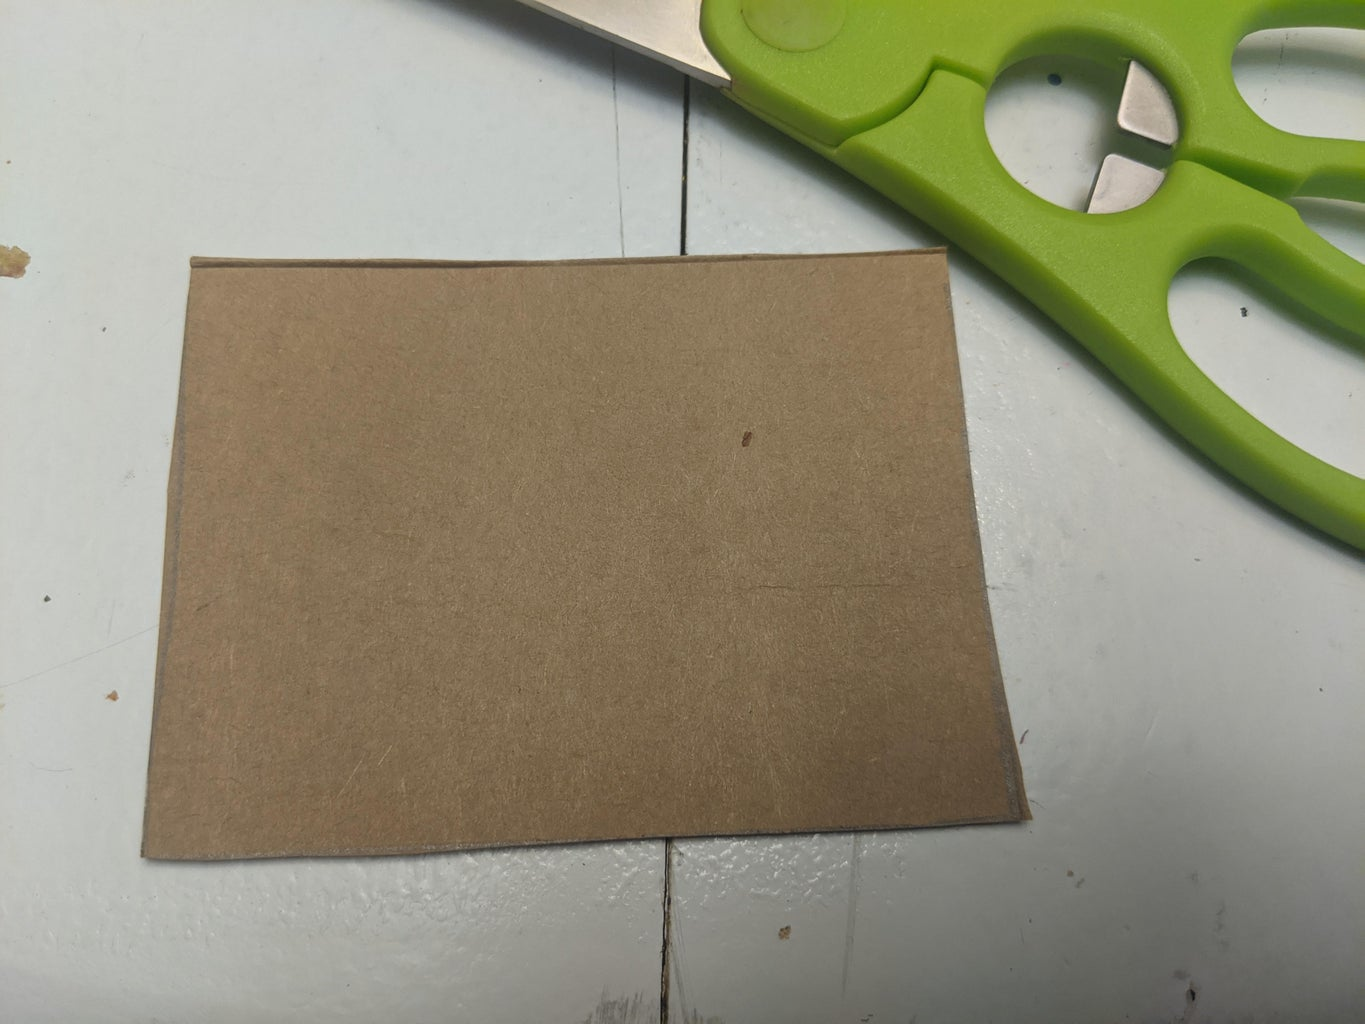 Cut Out a Nametag-sized Rectangle.